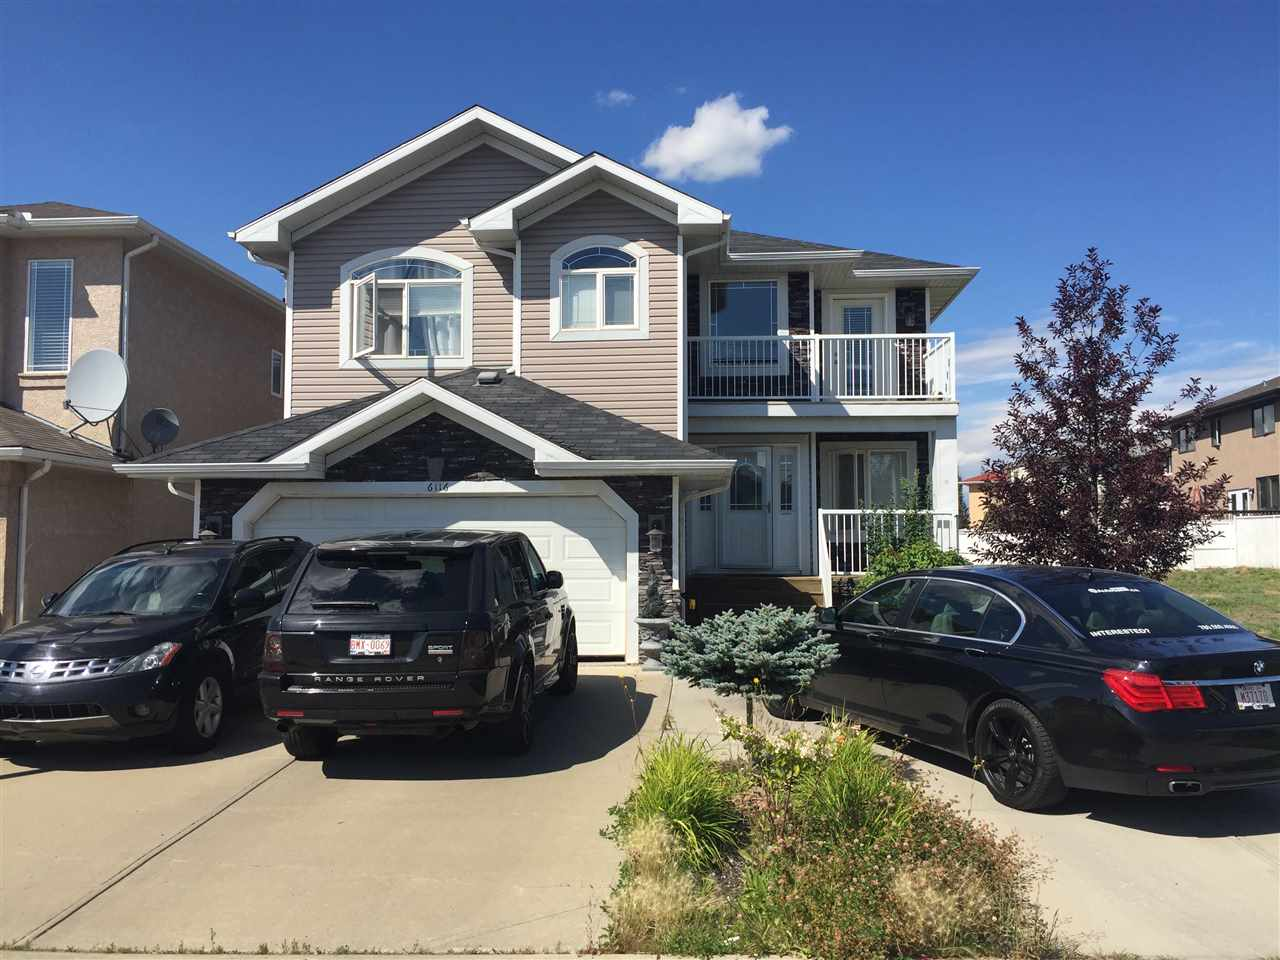 Main Photo: 6116 165 Avenue in Edmonton: Zone 03 House for sale : MLS® # E4074804